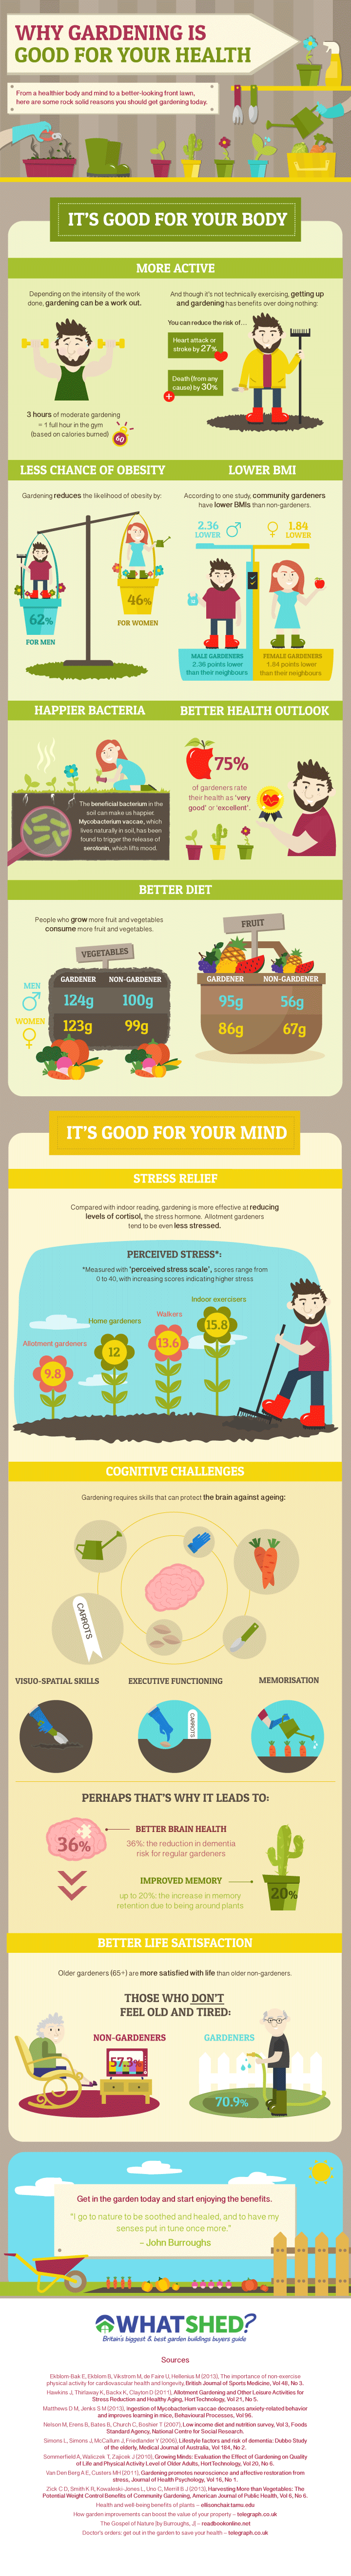 Picture of WhatShed Infographic of gardening for health